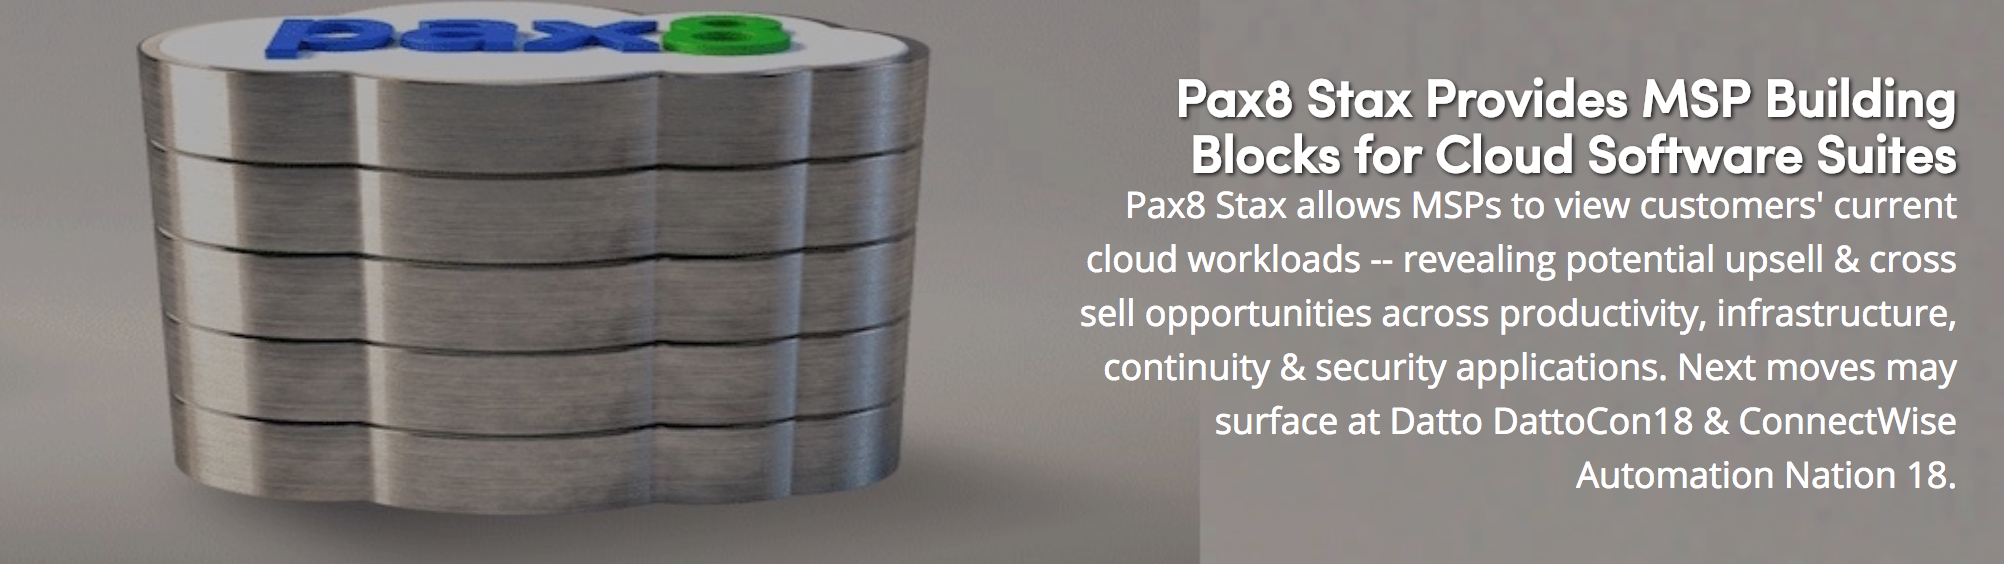 Channele2e: Pax8 Stax Provides MSP Building Blocks for Cloud Software Suites Image